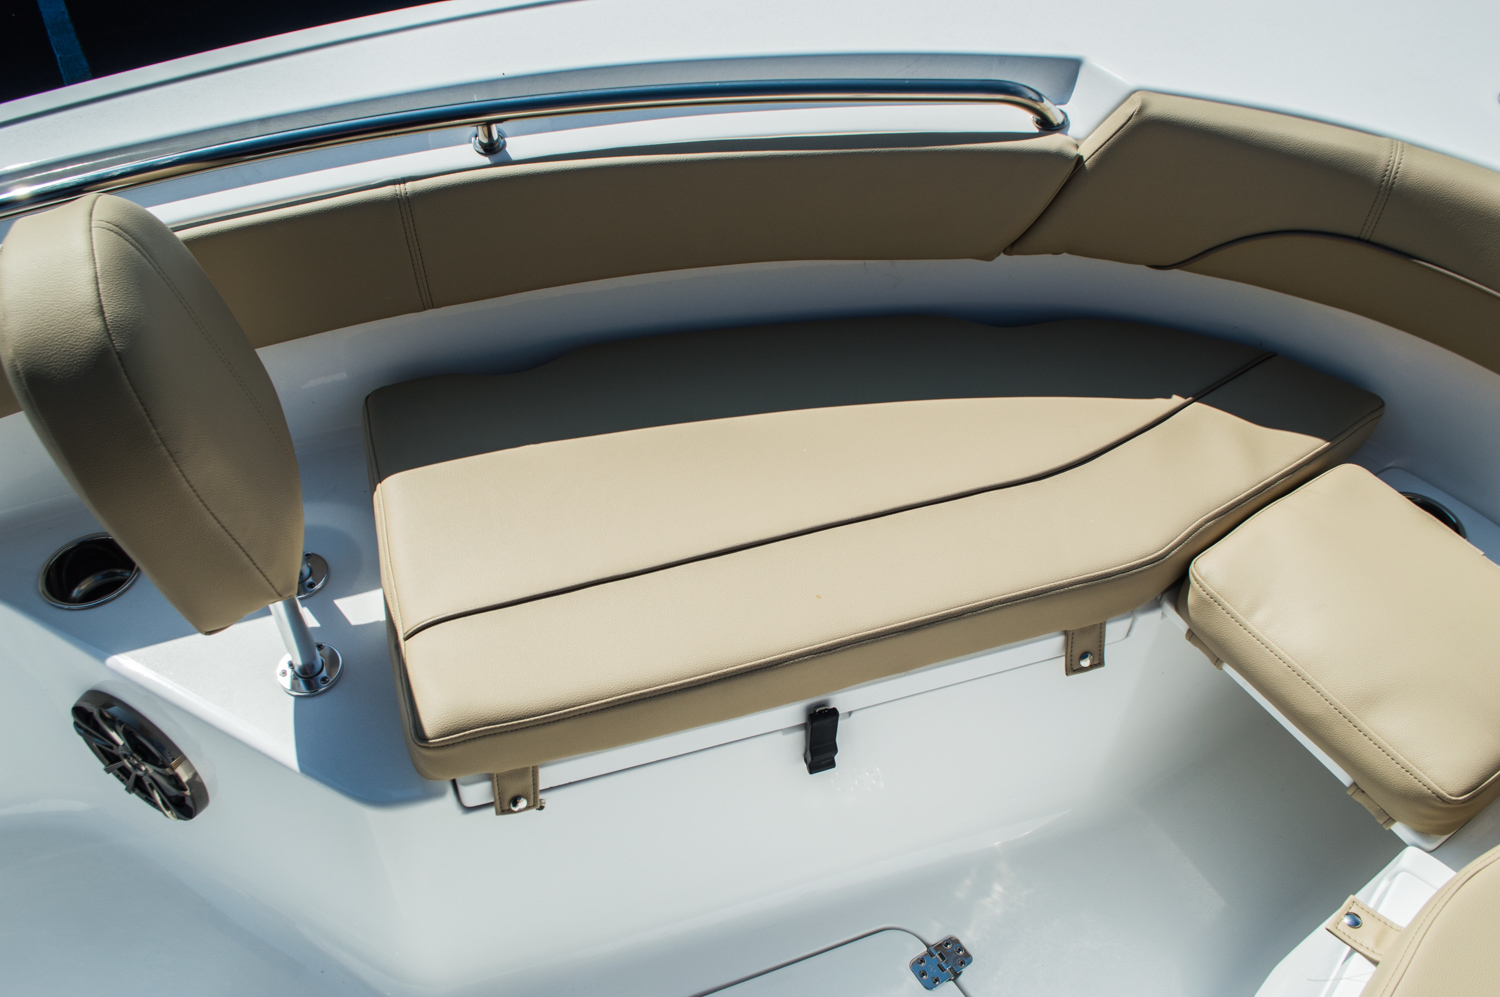 Thumbnail 17 for New 2016 Sportsman Open 212 Center Console boat for sale in West Palm Beach, FL